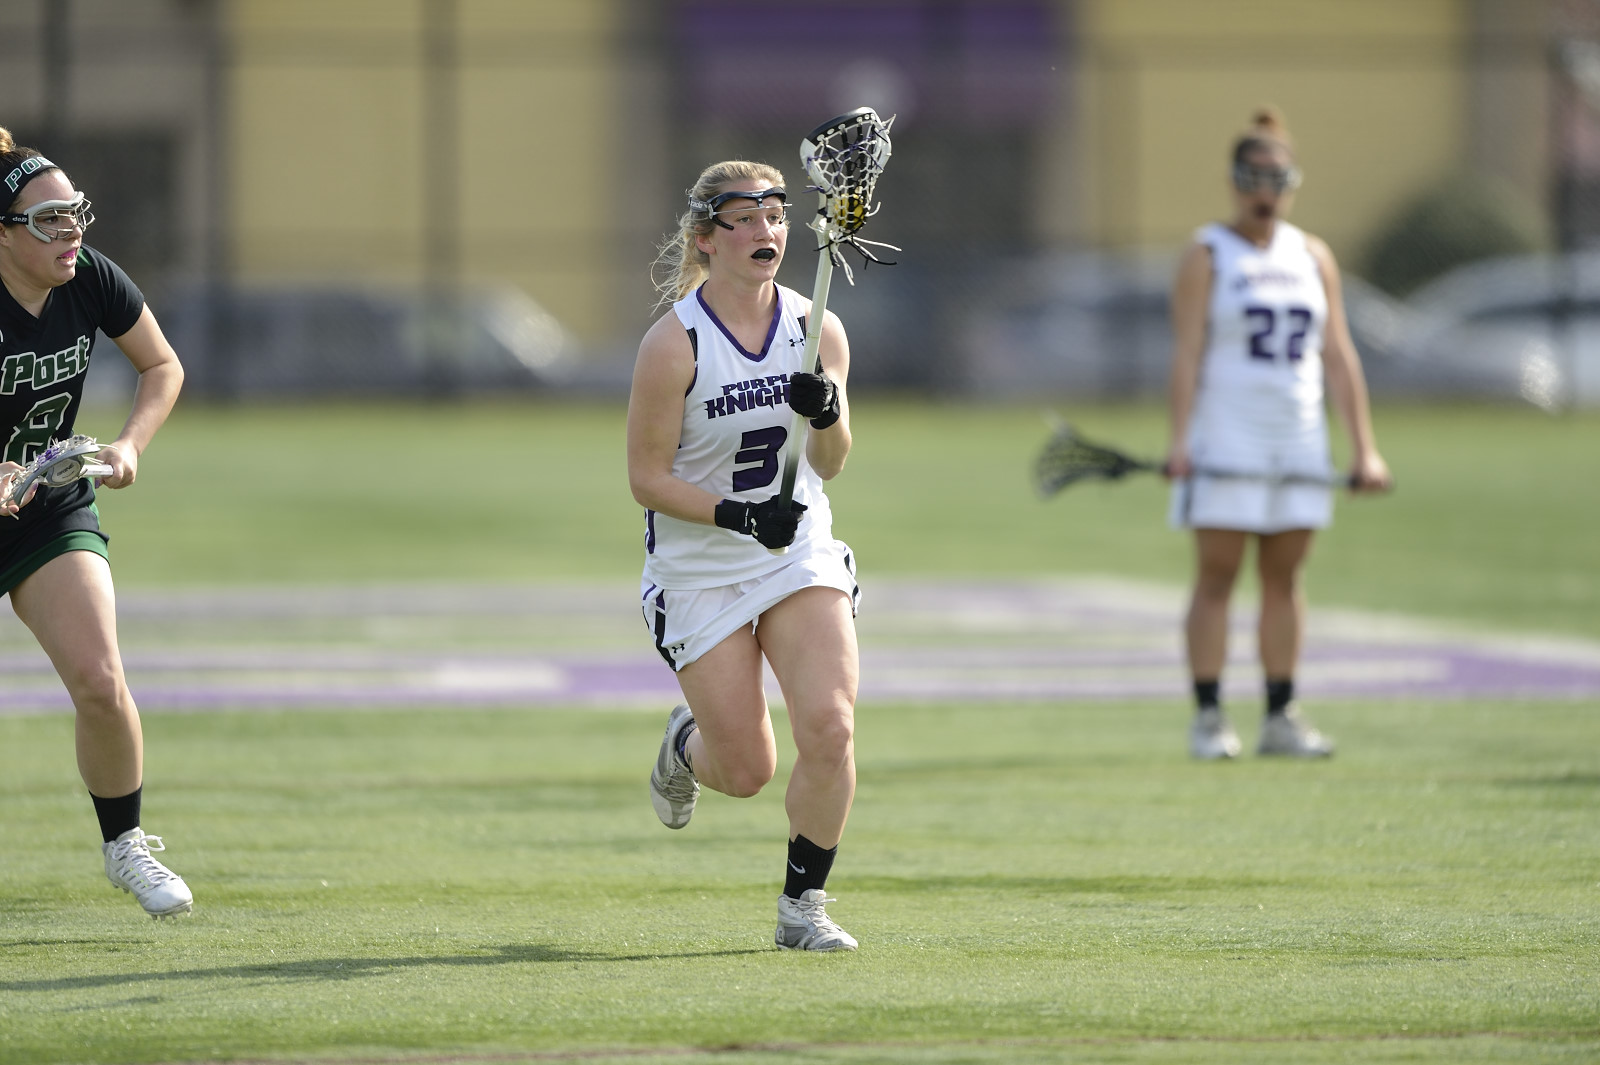 Lauren Mengel Nets Five Goals In 13-8 Women's Lacrosse Loss At Assumption